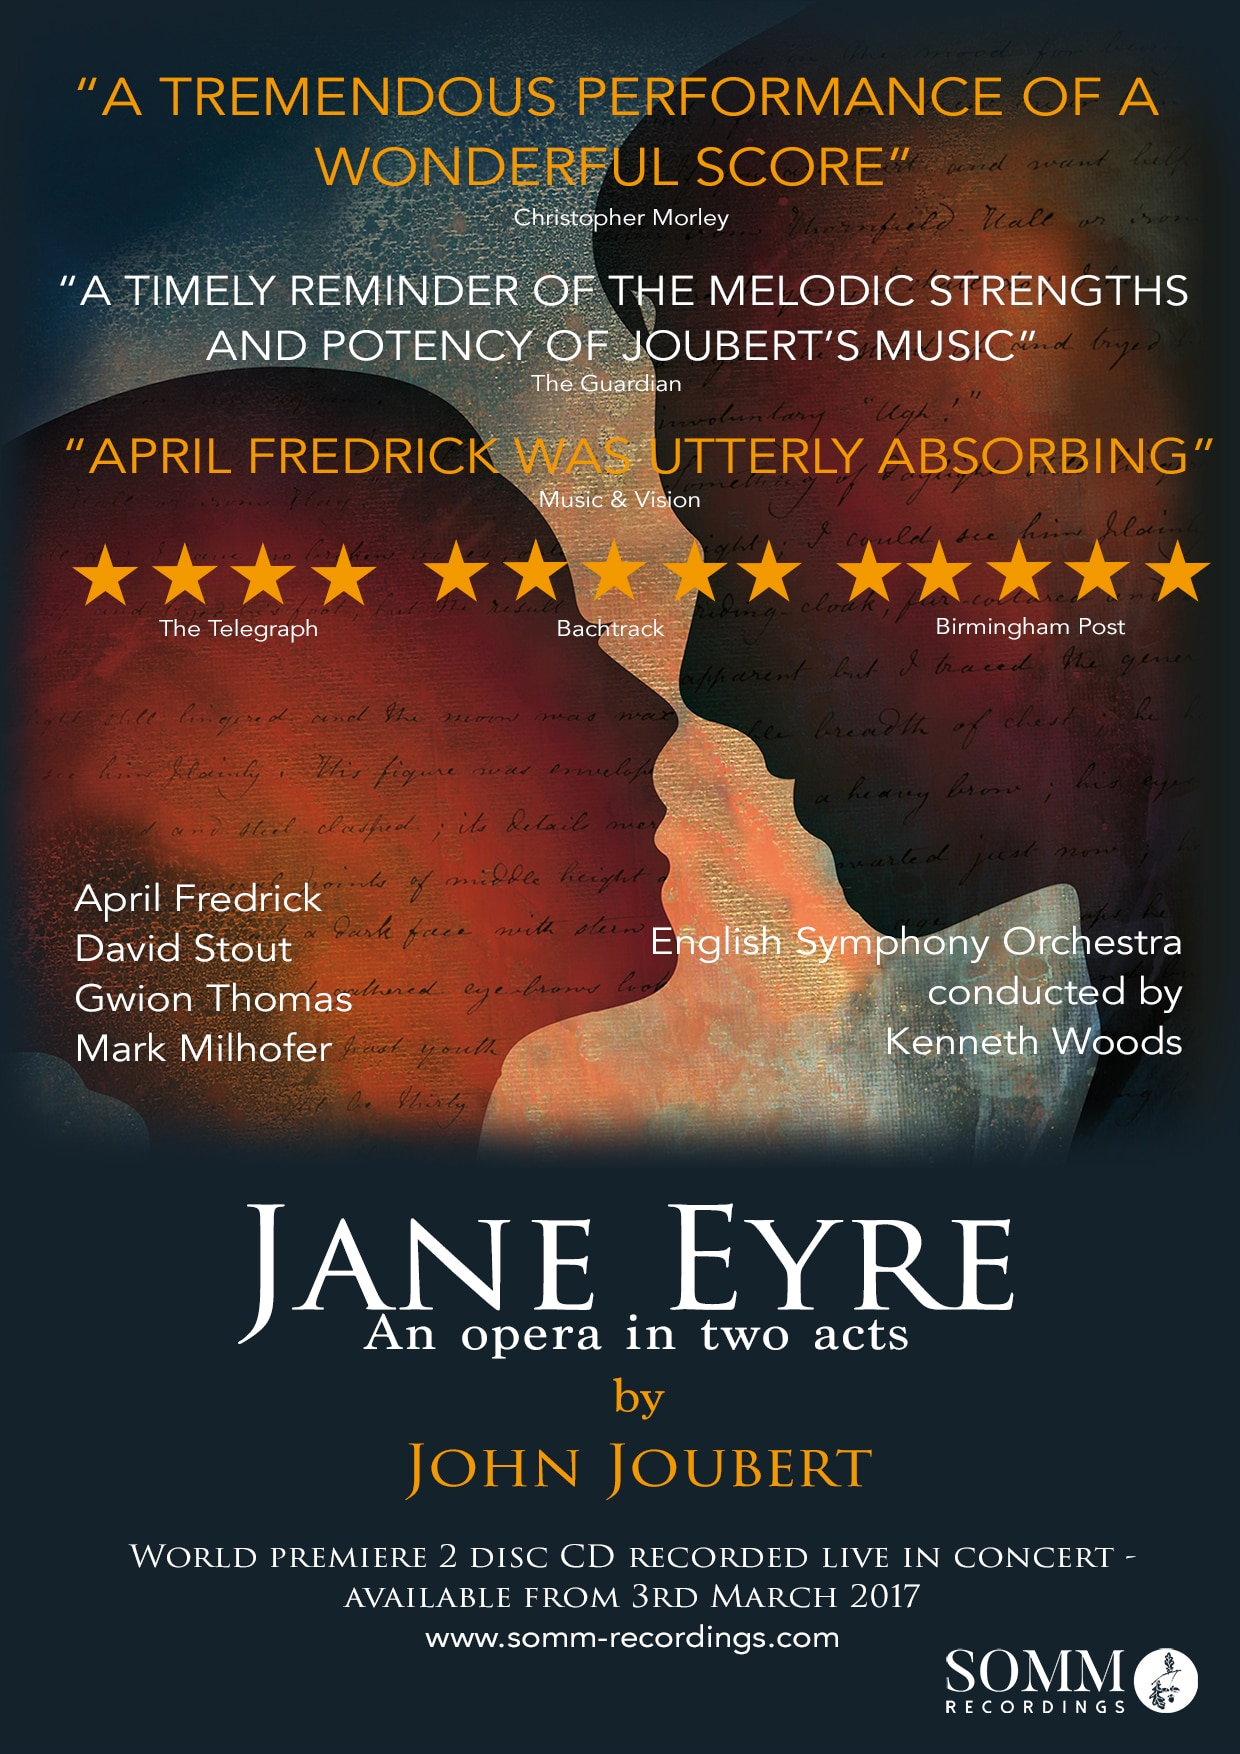 Five Stars for Jane Eyre at The Classical Ear